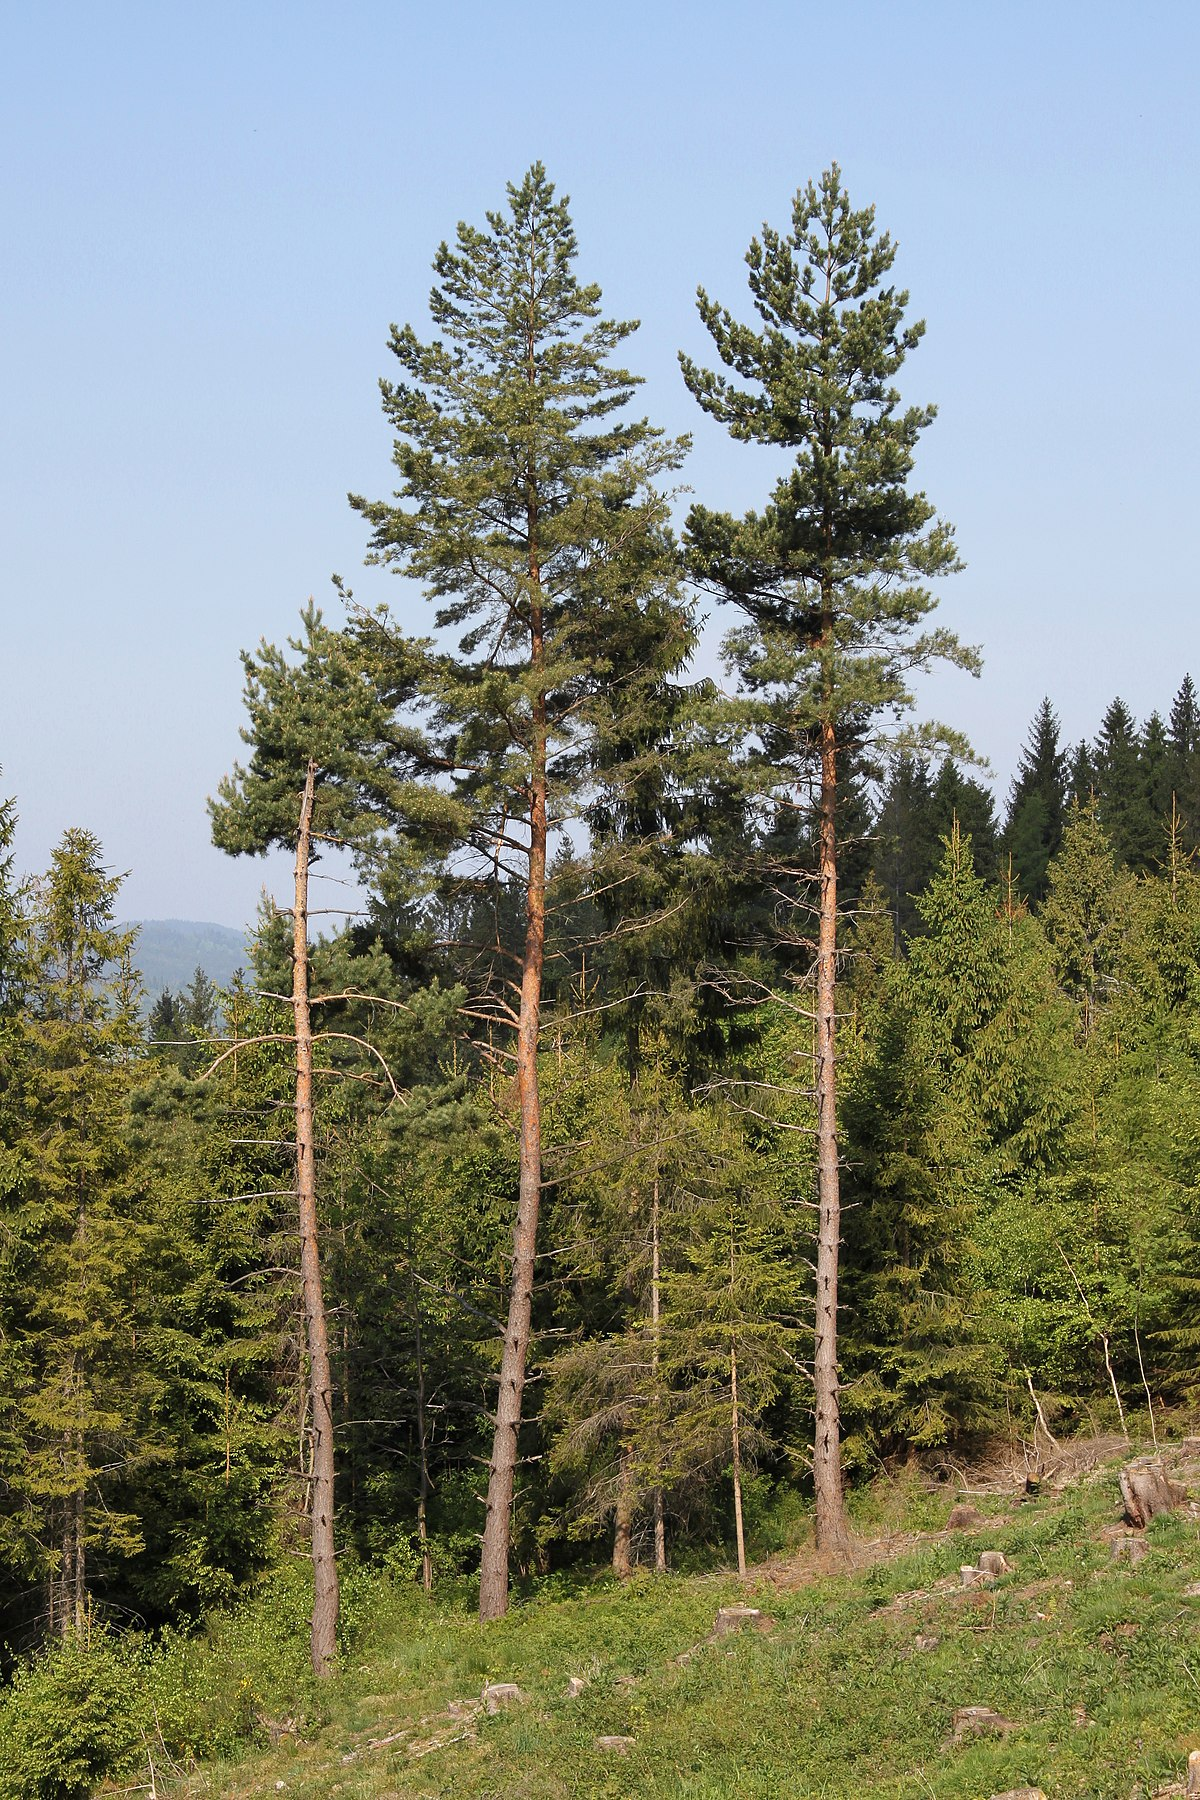 Pine norsk